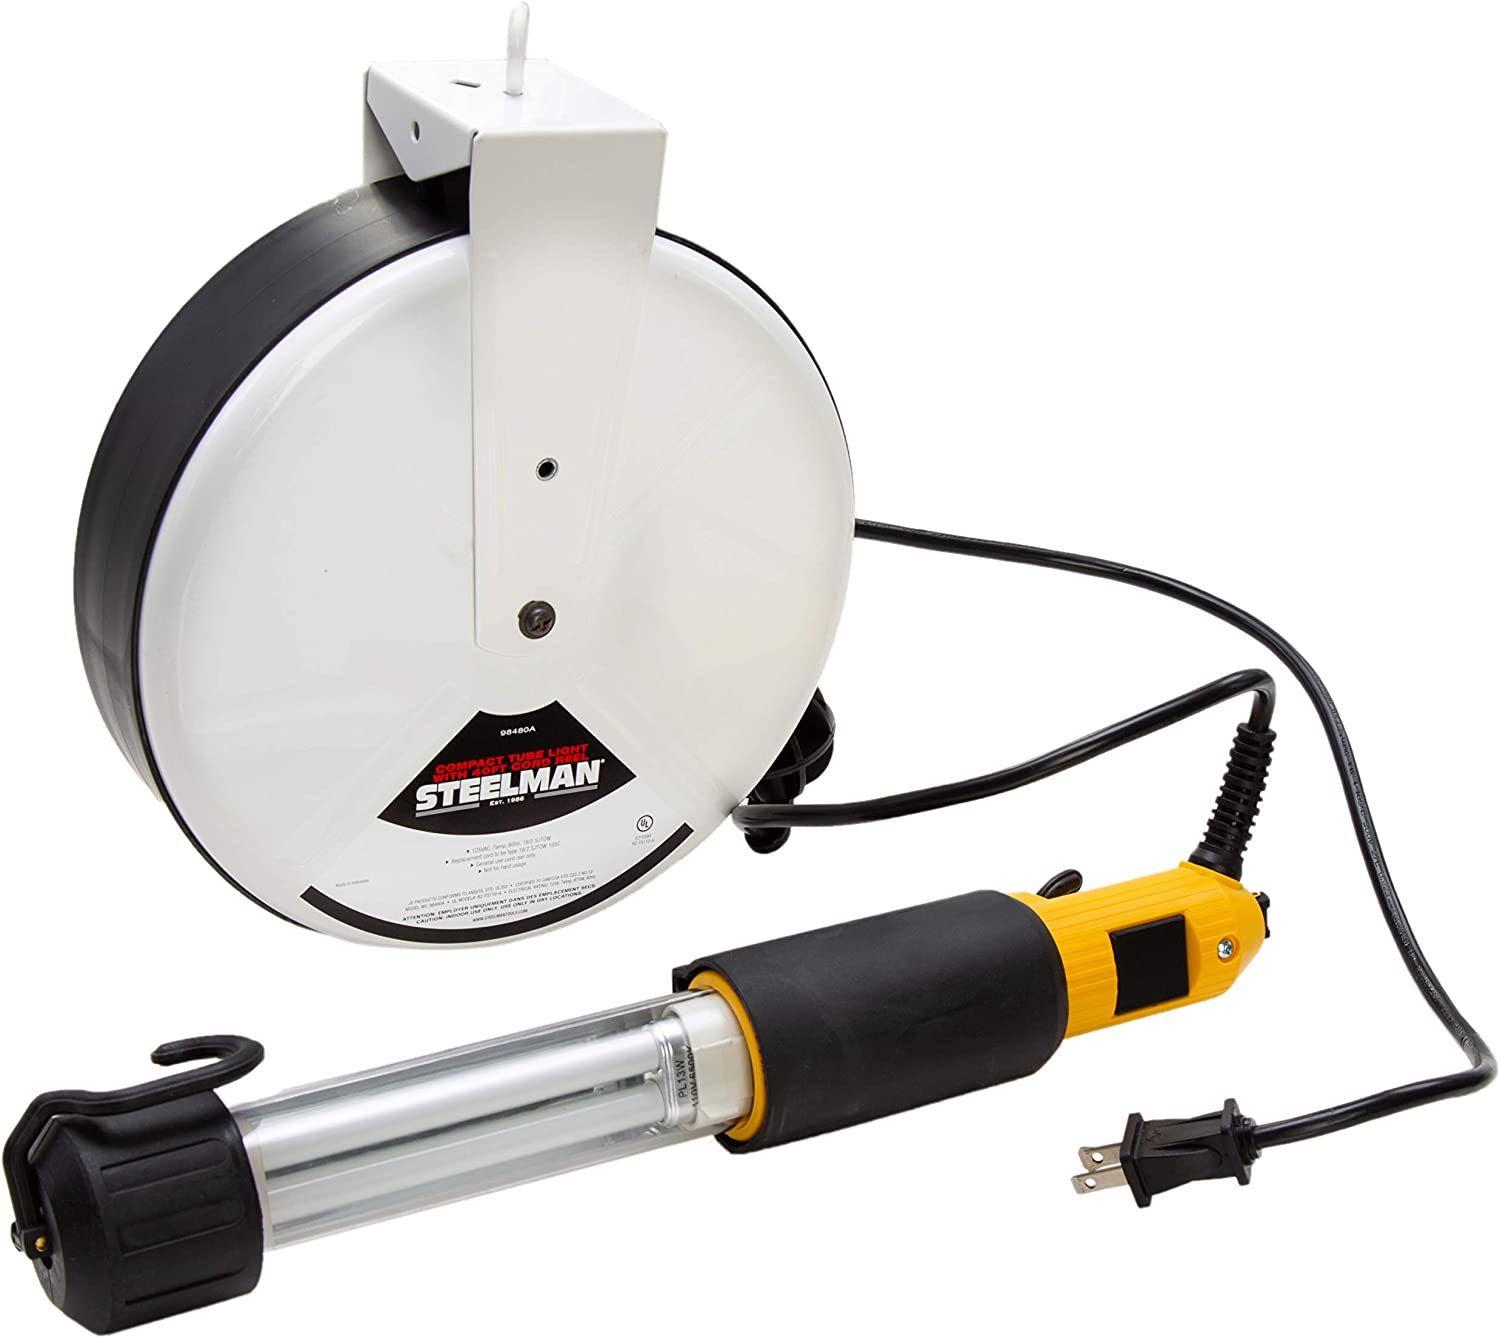 Steelman Compact Super special price Fluorescent Work Light for or Garage w Workshop El Paso Mall